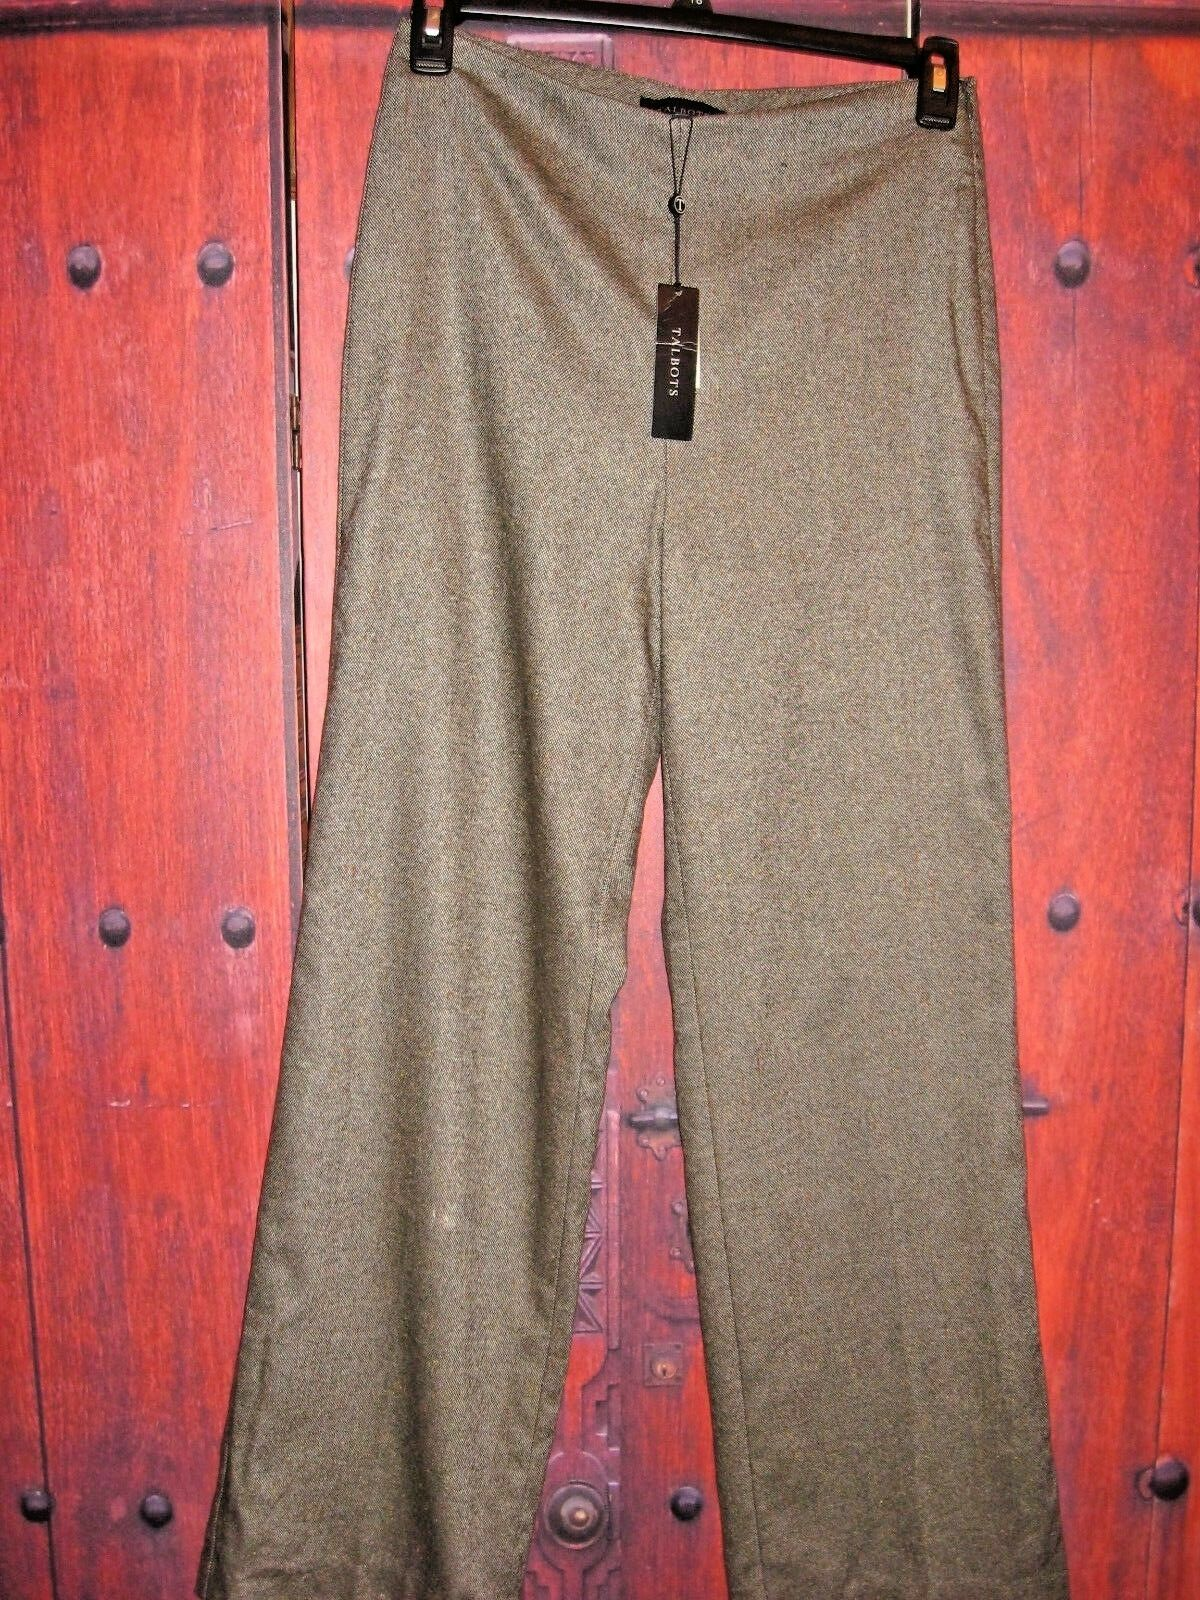 TALBOTS WOMEN'S WOOL BLEND DRESS GORGEOUS PANTS SIZE 6   119.00